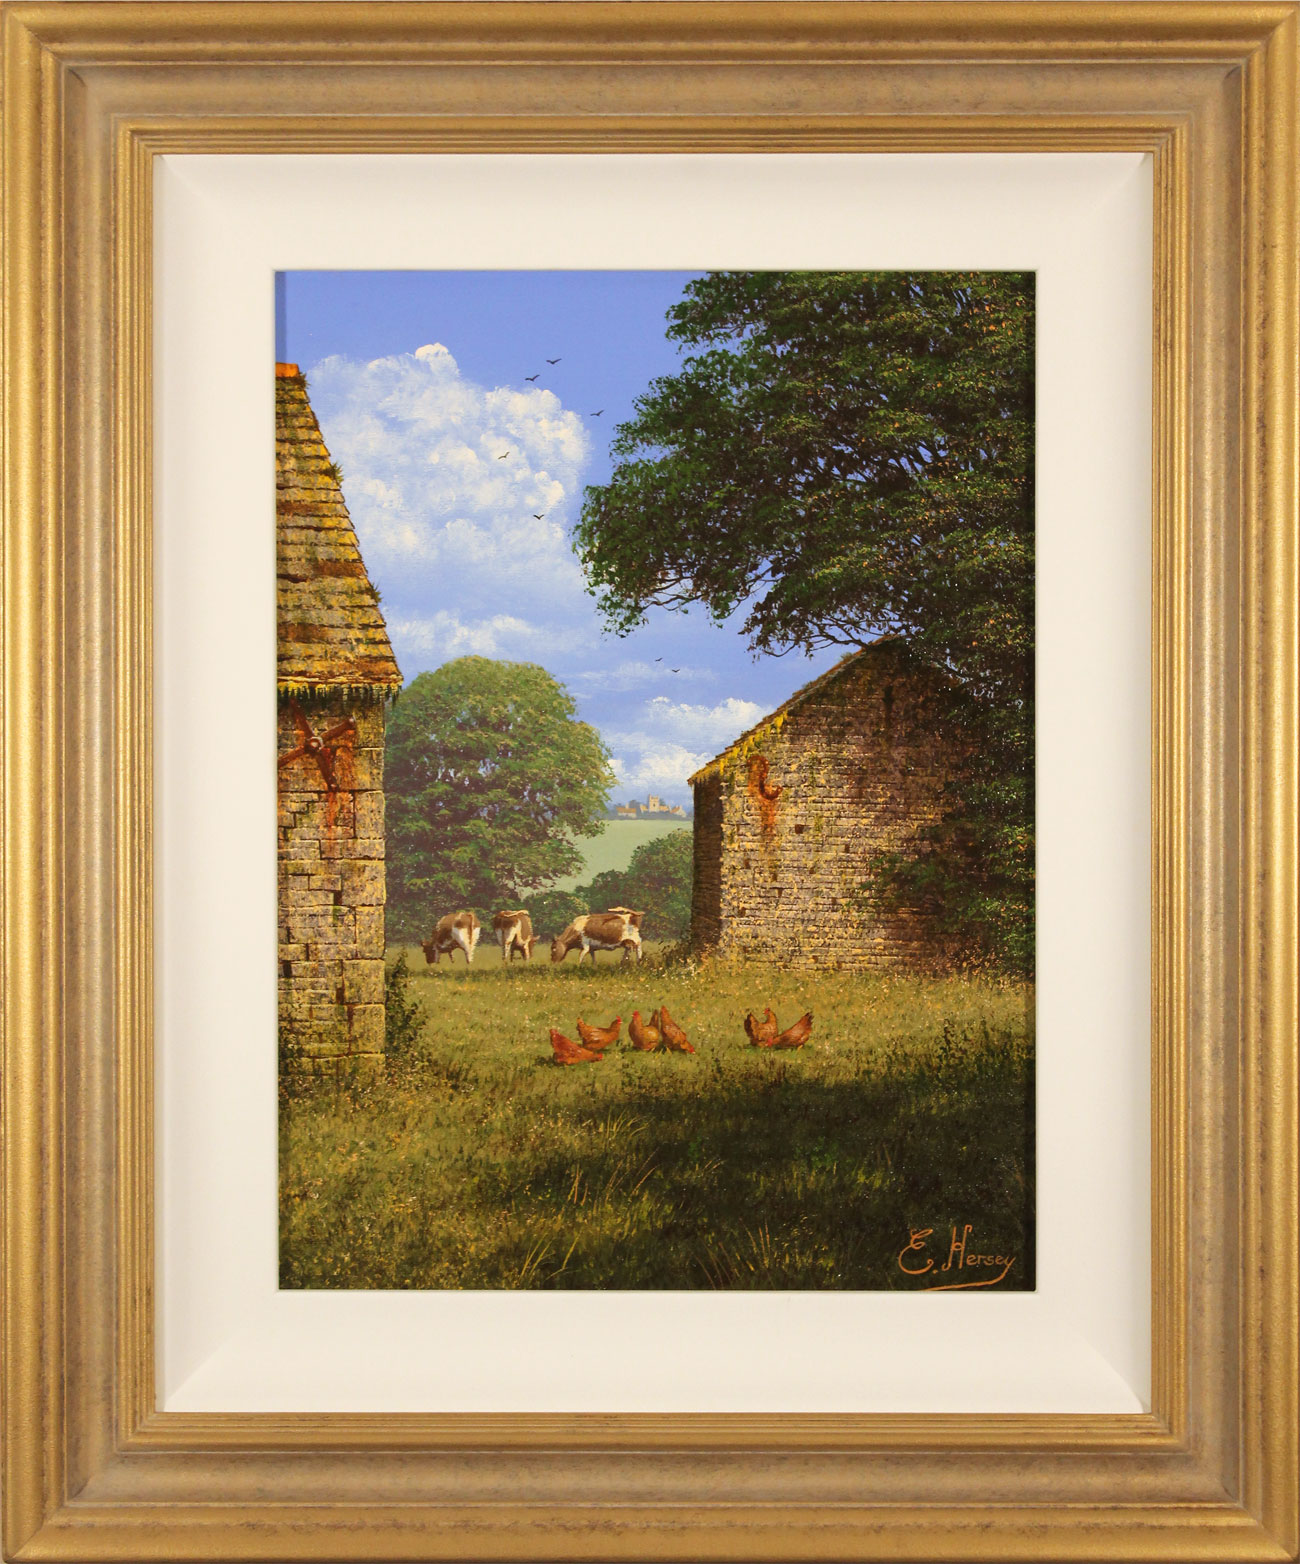 Edward Hersey, Original oil painting on canvas, One Fine Yorkshire Morning Click to enlarge